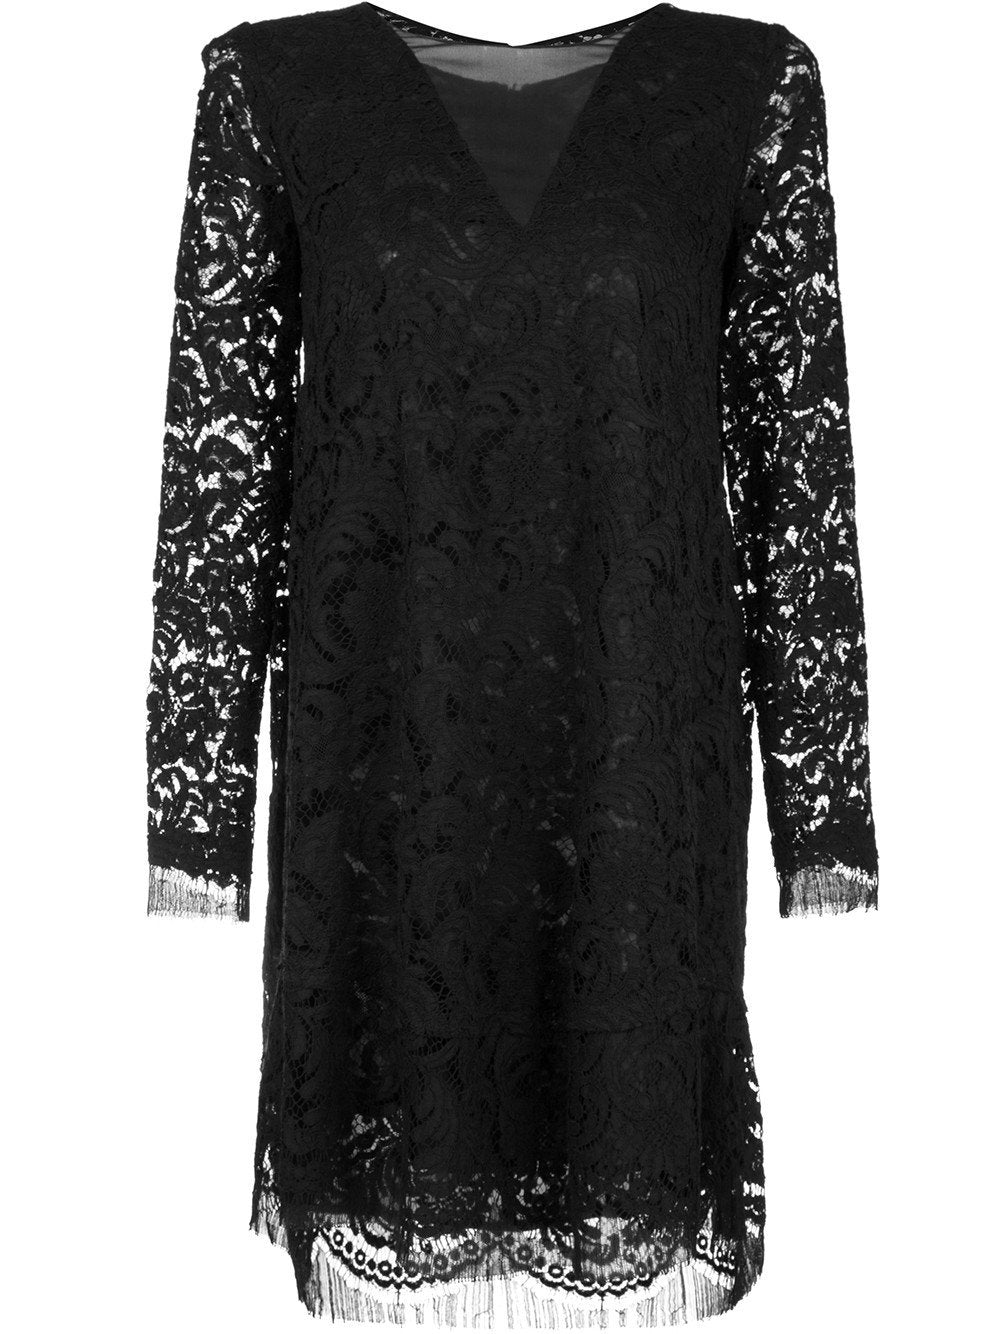 Cotton & Corded Lace Trapeze Dress with Sheer Chiffon